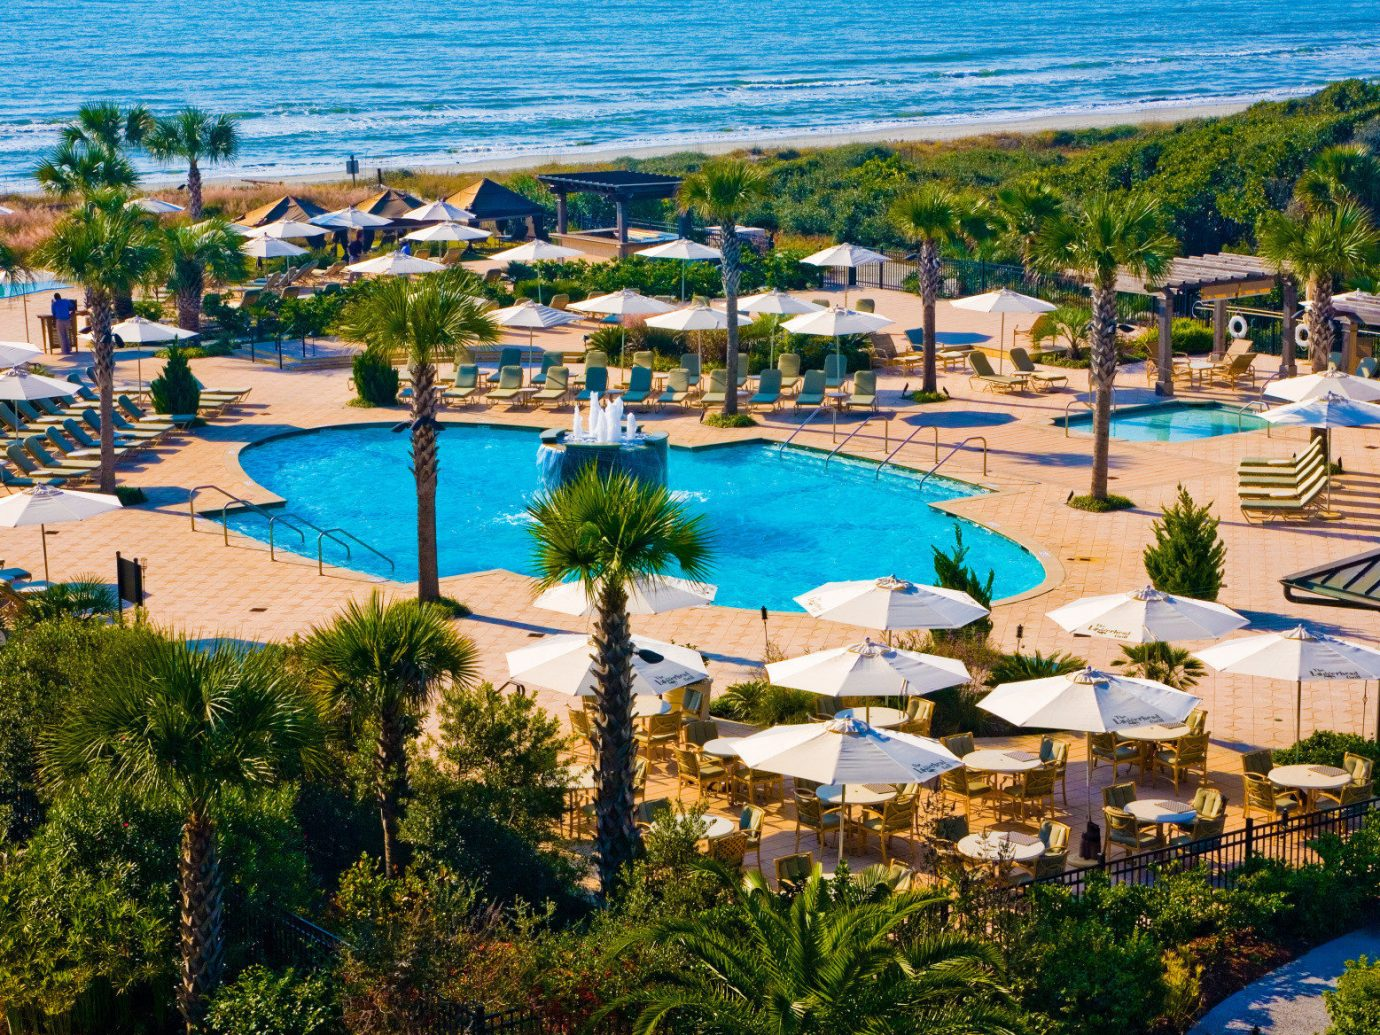 East Coast USA Trip Ideas outdoor water tree umbrella Resort leisure swimming pool Beach property lawn estate vacation marina Nature resort town dock Water park bay Village several shore swimming lined sandy